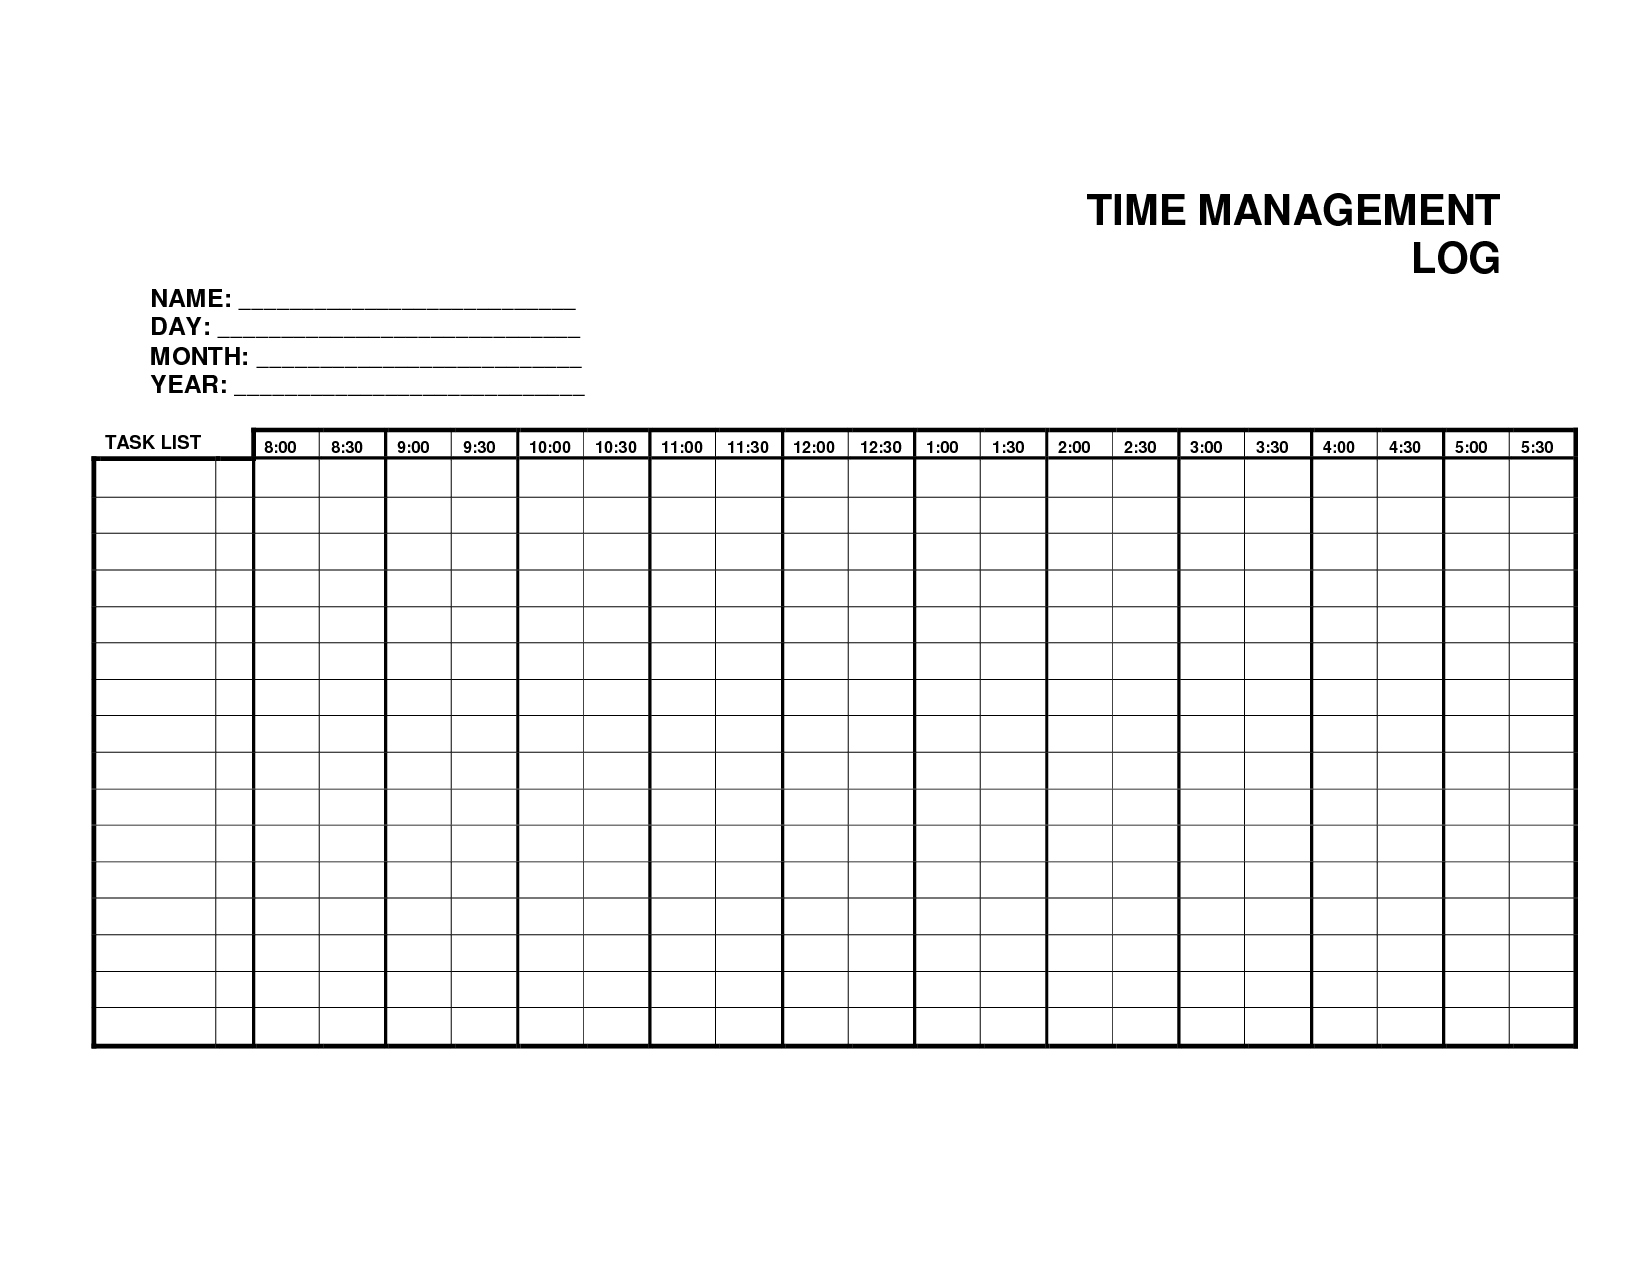 5 Log Sheet Templates formats Examples in Word Excel – Time Log Template